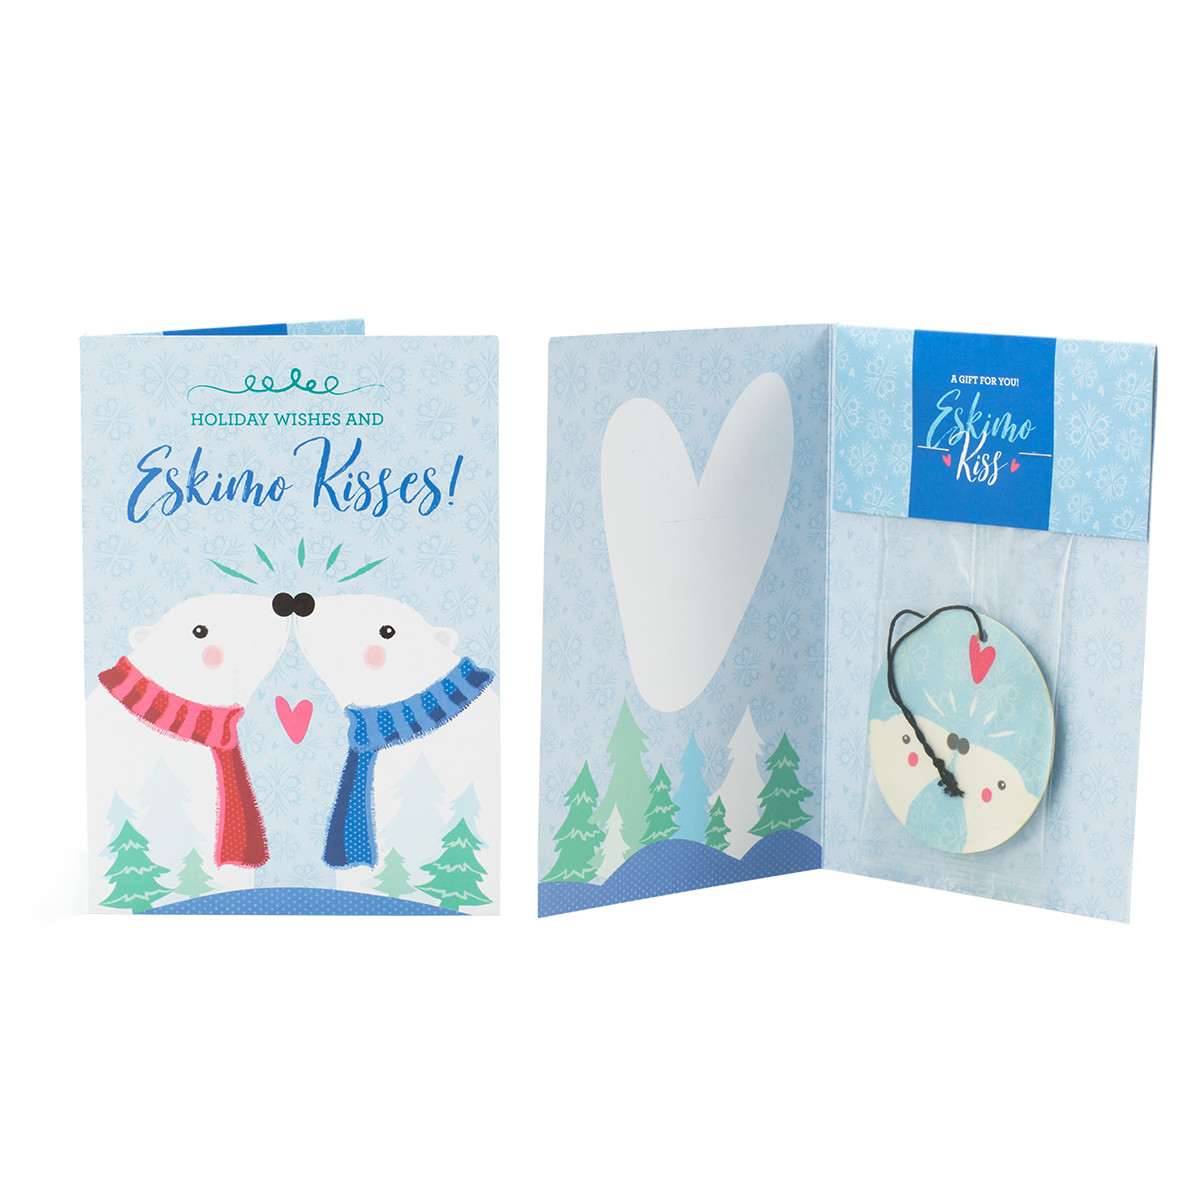 Eskimo kiss scentsy holiday greeting card buy scentsy the safest eskimo kiss scentsy holiday greeting card m4hsunfo